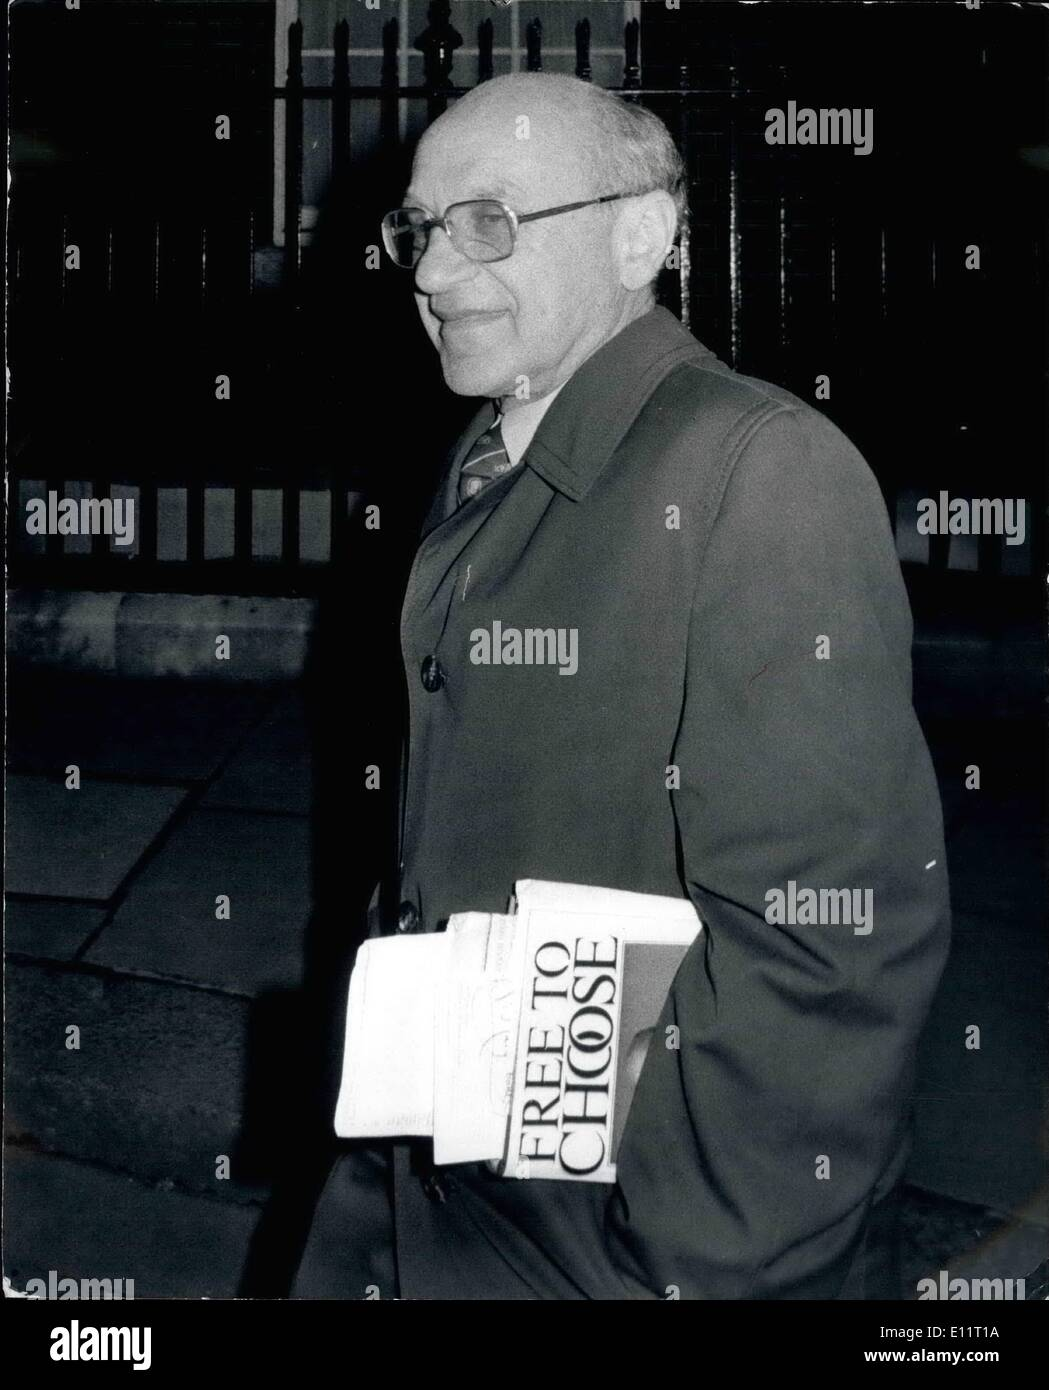 Feb. 02, 1980 - Prof. Milton Friedman Calls on Mrs. Thatcher: Prof. Milton Friedman, a Nobel laureate and professor at the University of Chicago, spent an hour at No 10 Downing Street last night in discussion with Mrs. Thatcher and other ministers. Prof. Friedman had made a recent statement saying that Mrs. Thatcher's Government was not ''getting its economic policy quite right''. The Prime Minist has long been an admirer of the Friedman philosophy with its emphasis on curbing inflation and reducing State intervention. Photo shows Prof - Stock Image